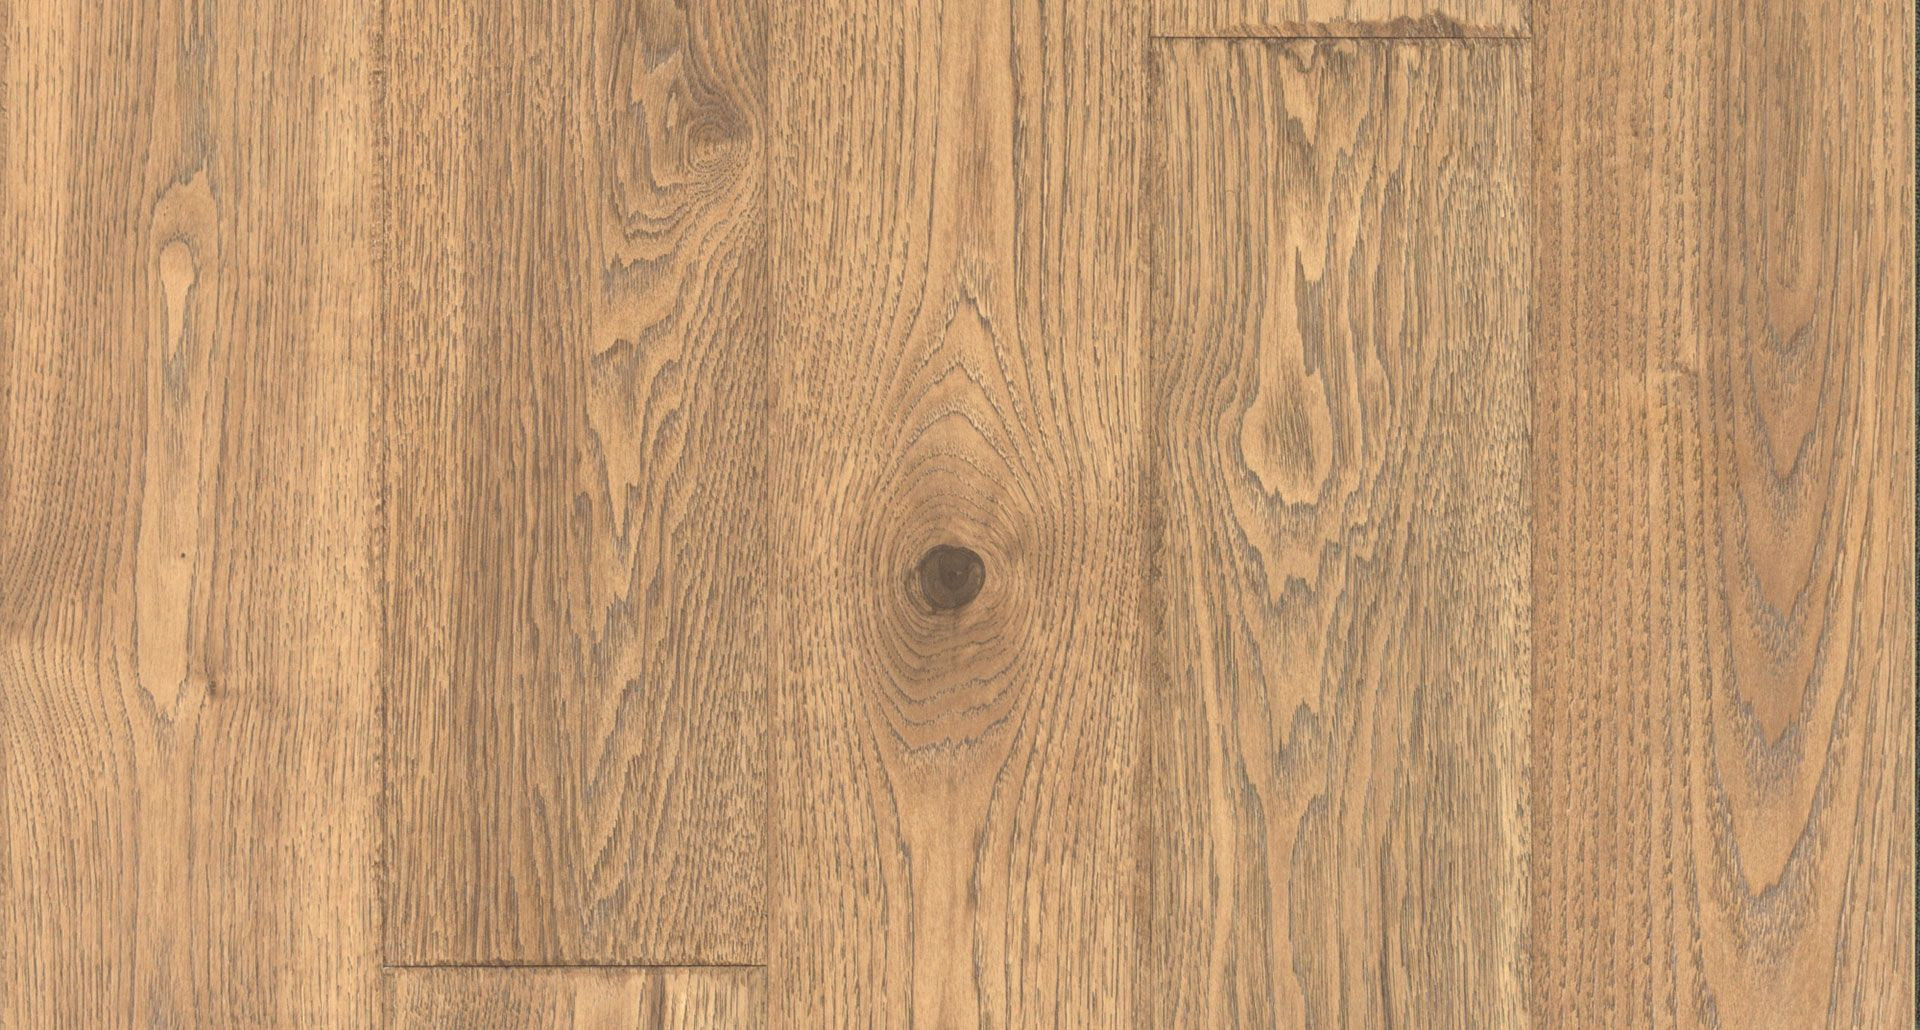 hardwood flooring perth of wide plank wood flooring beautiful hardwood flooring including with regard to wide plank wood flooring beautiful engaging discount hardwood